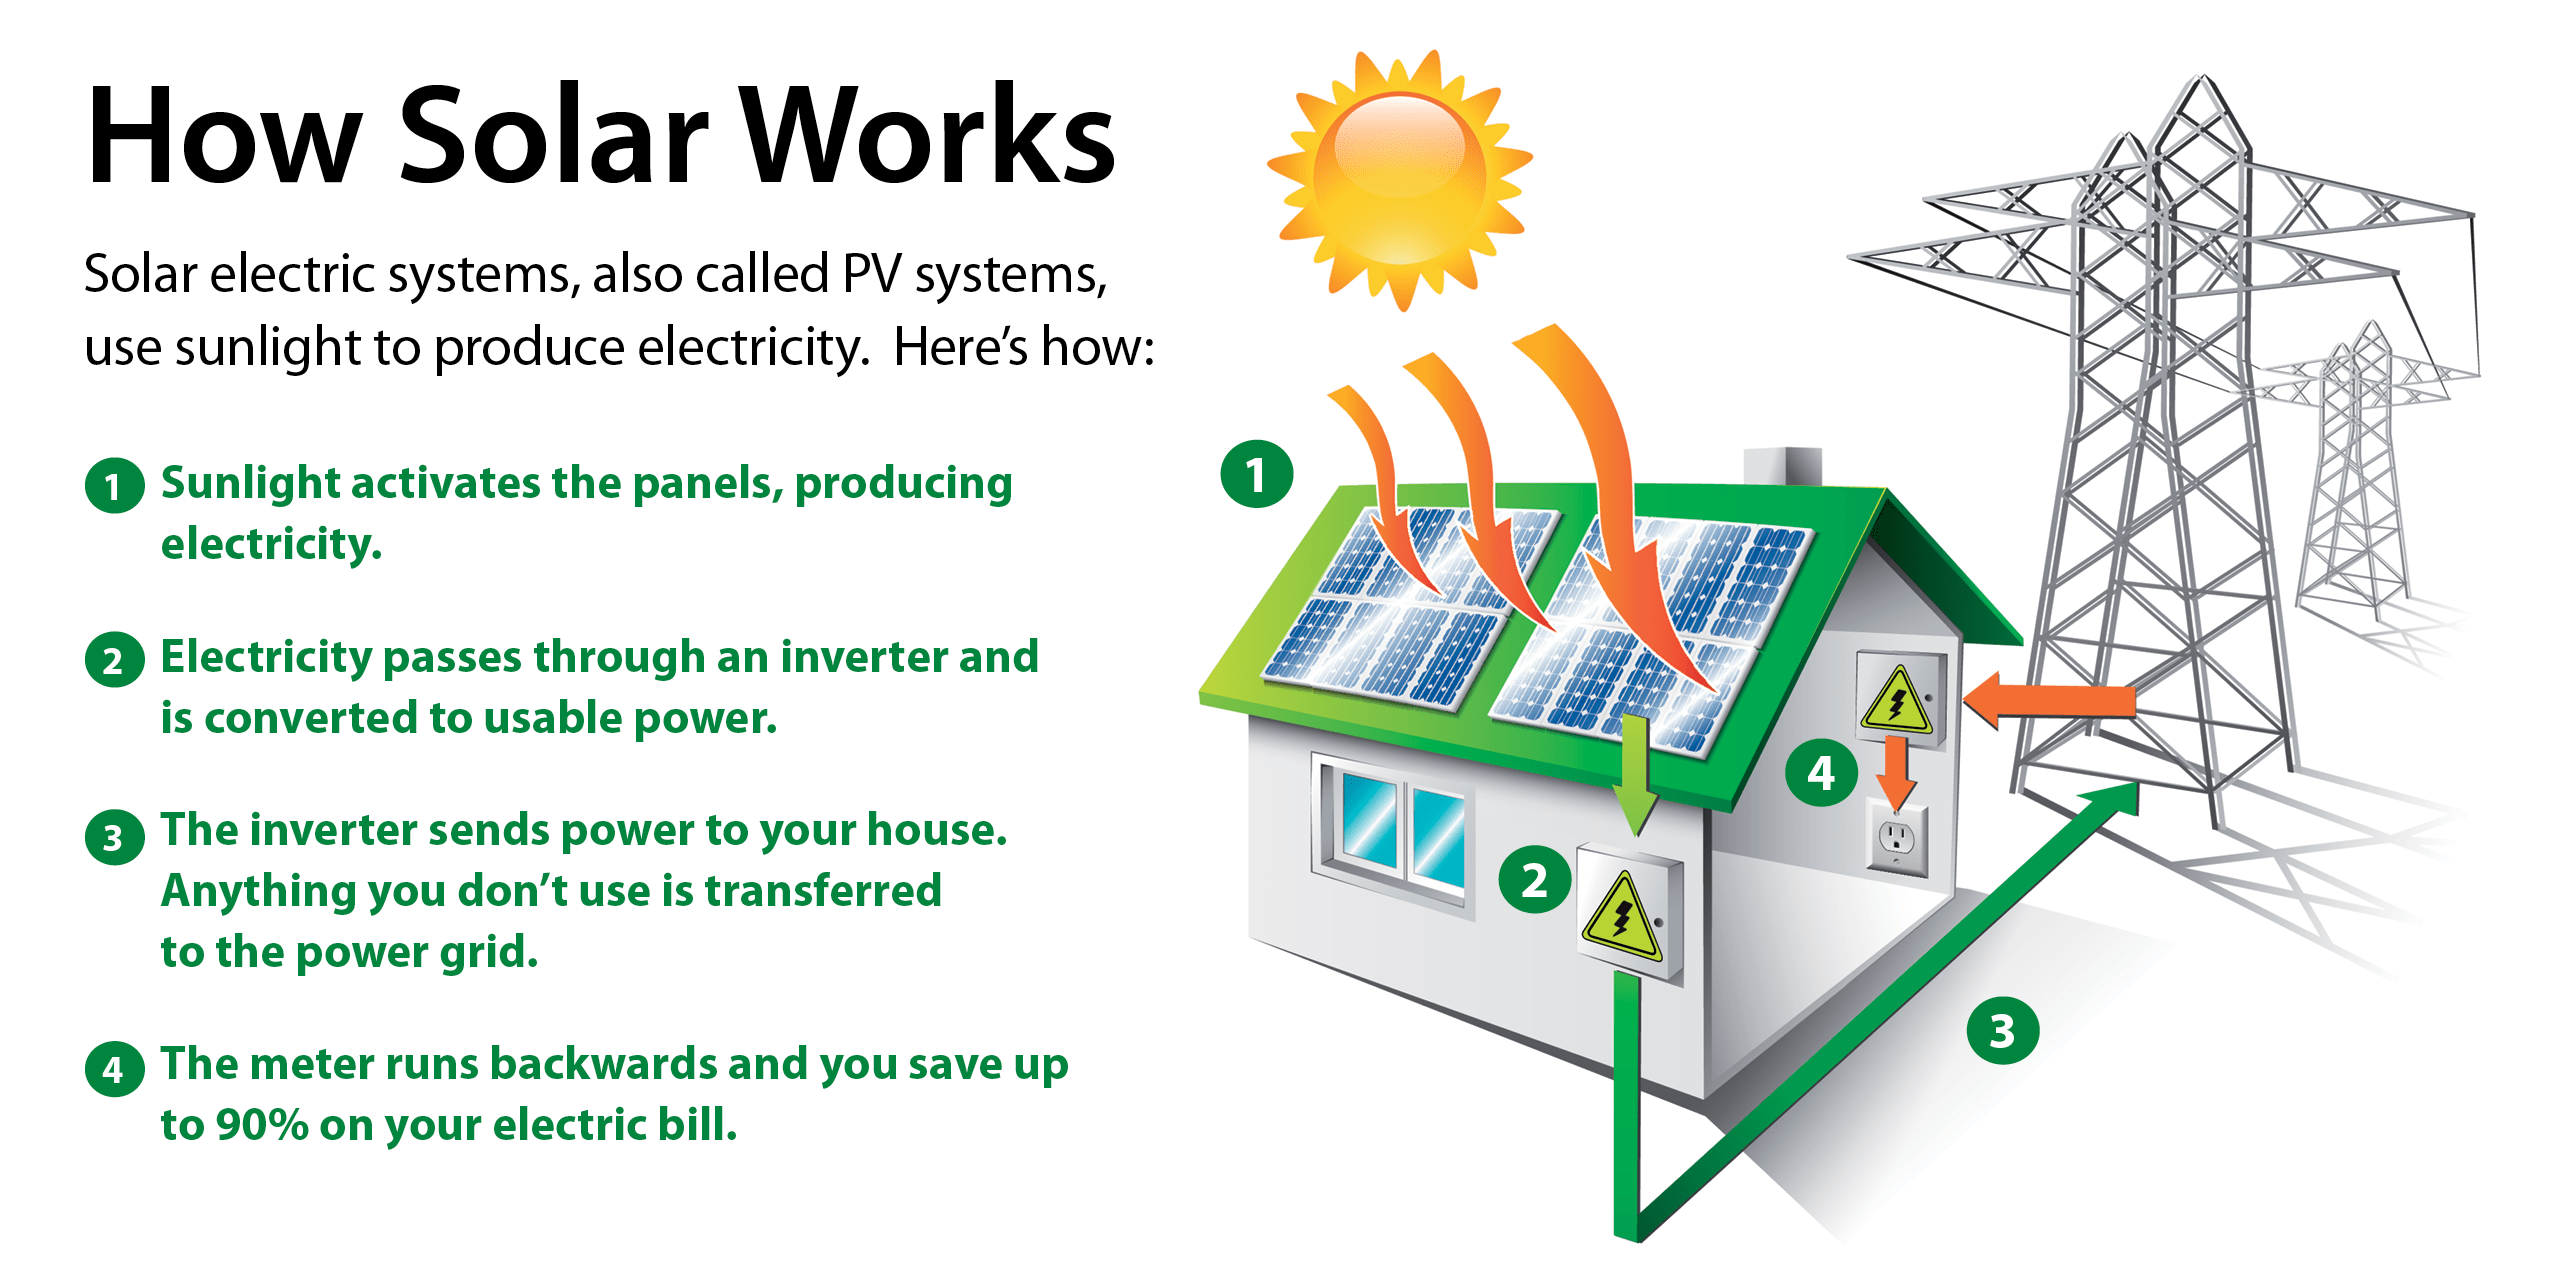 Frequently Asked Questions About Going Solar With GRID